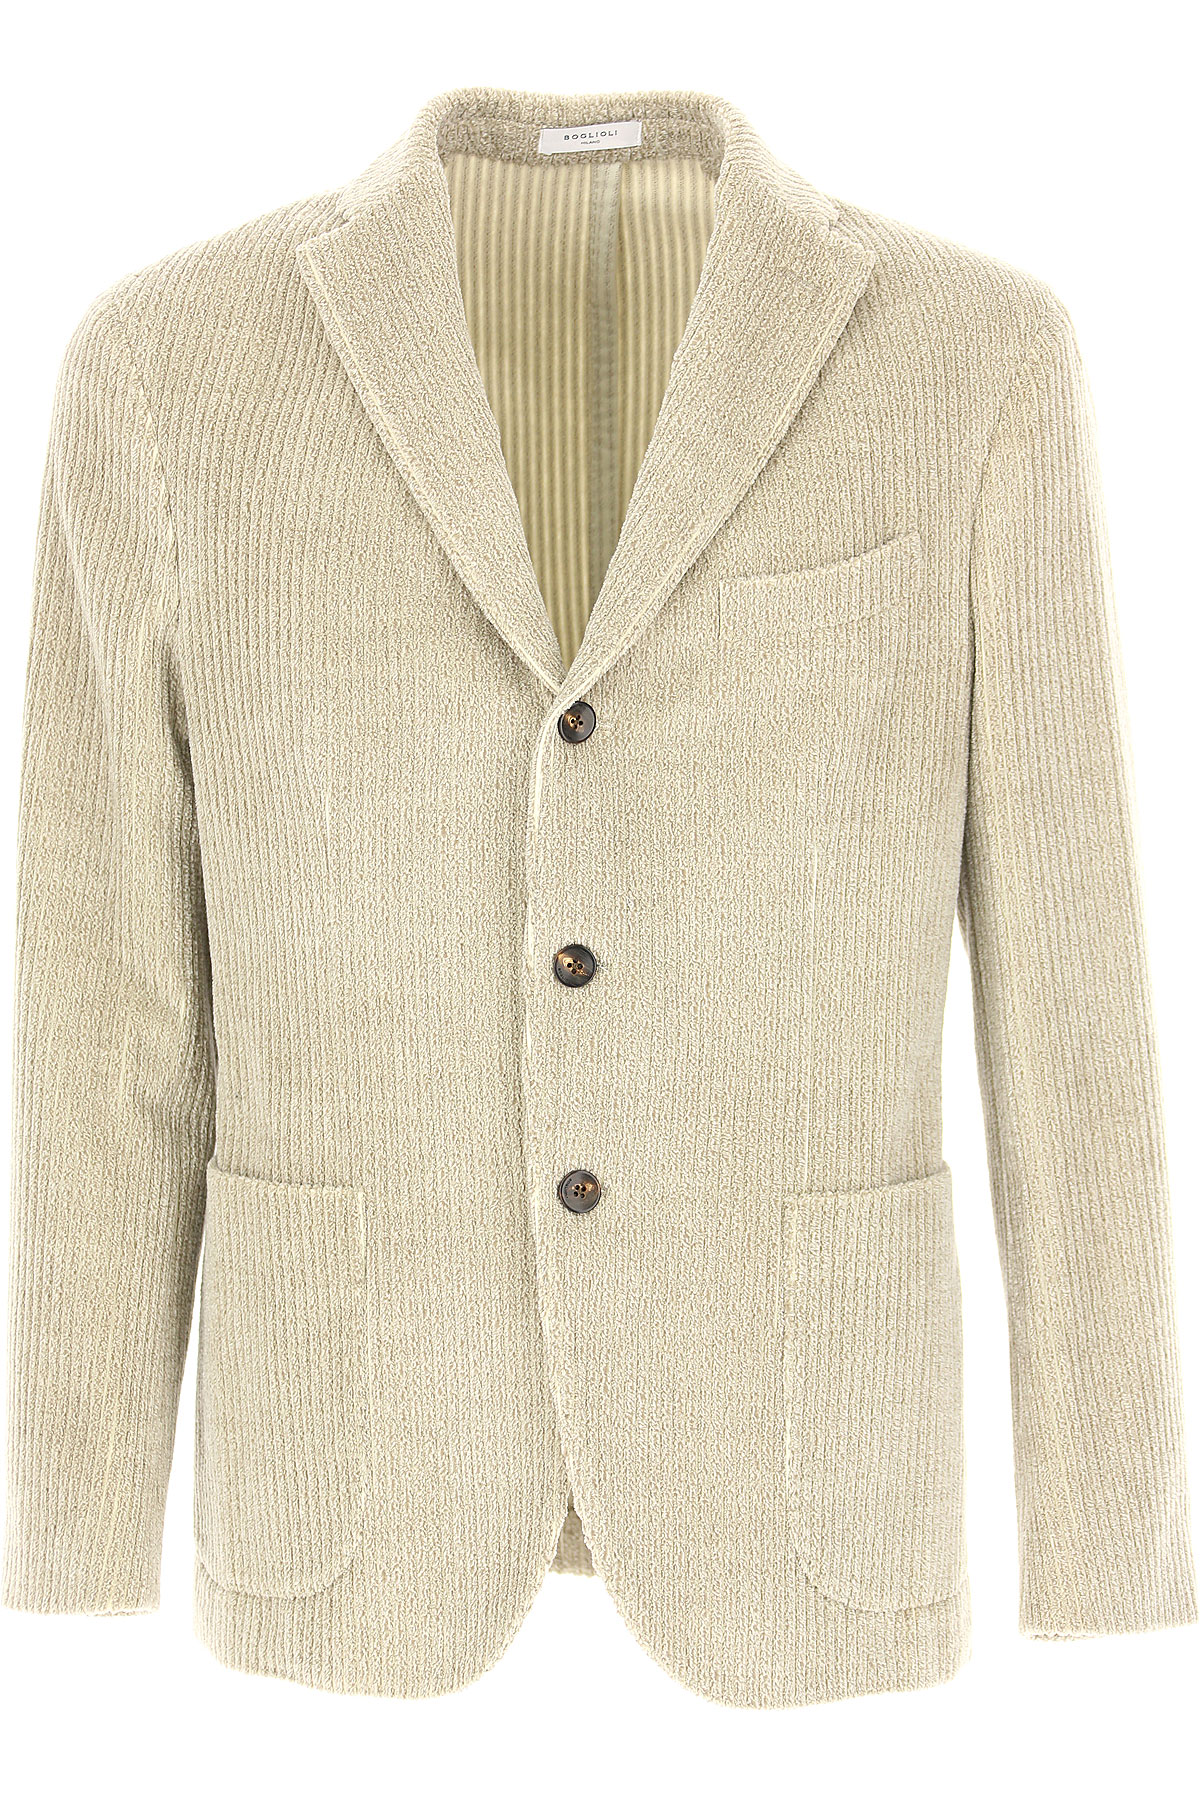 Boglioli Blazer for Men, Sport Coat On Sale, Beige, Cotton, 2019, L M S XL